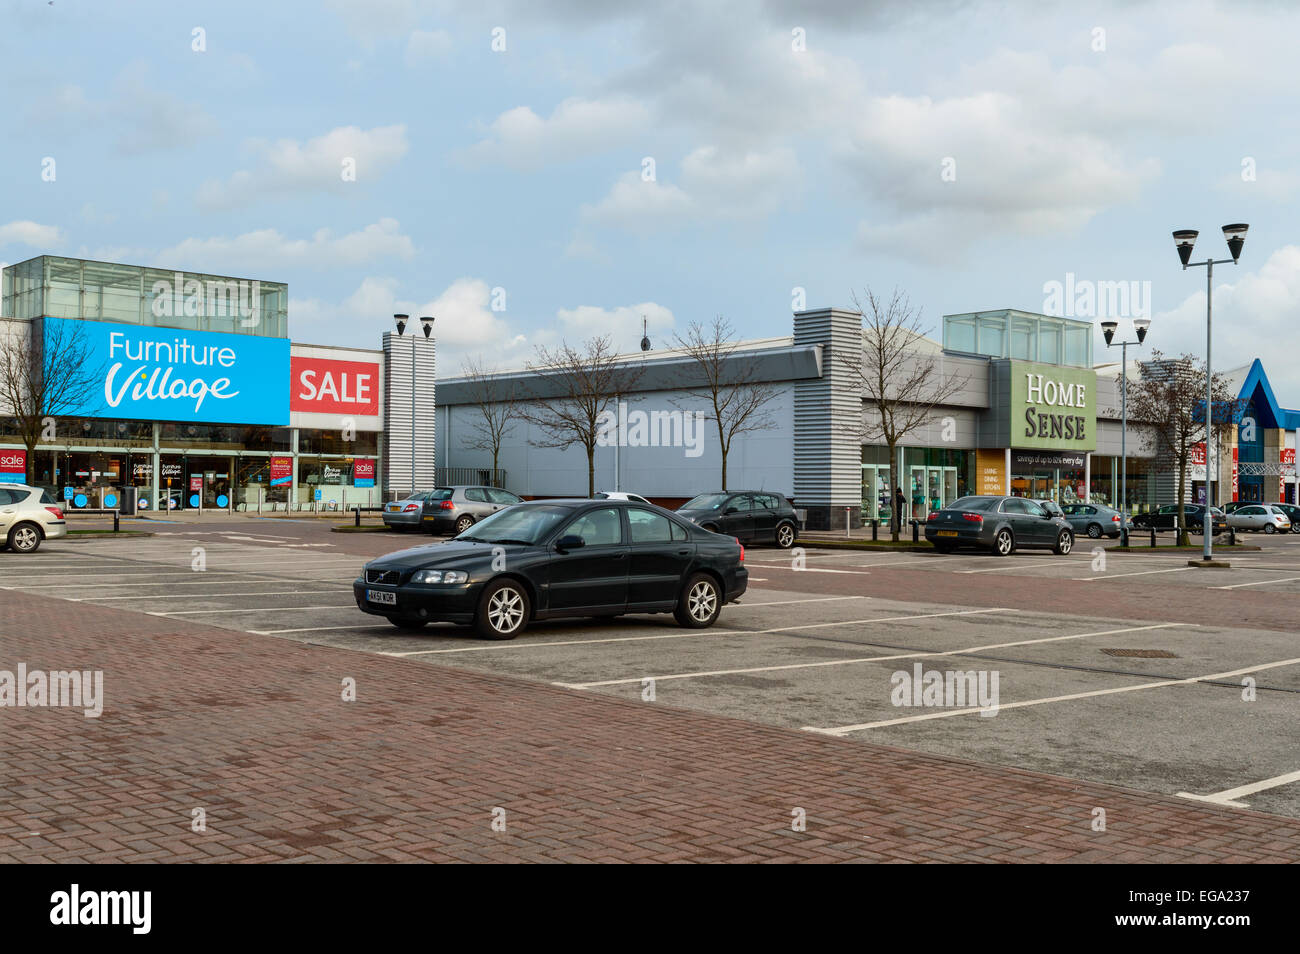 Furniture Village, and Home Sense stores at Castle Marina Retail Park, Castle Bridge Road, Nottingham, NG7 1GX, - Stock Image